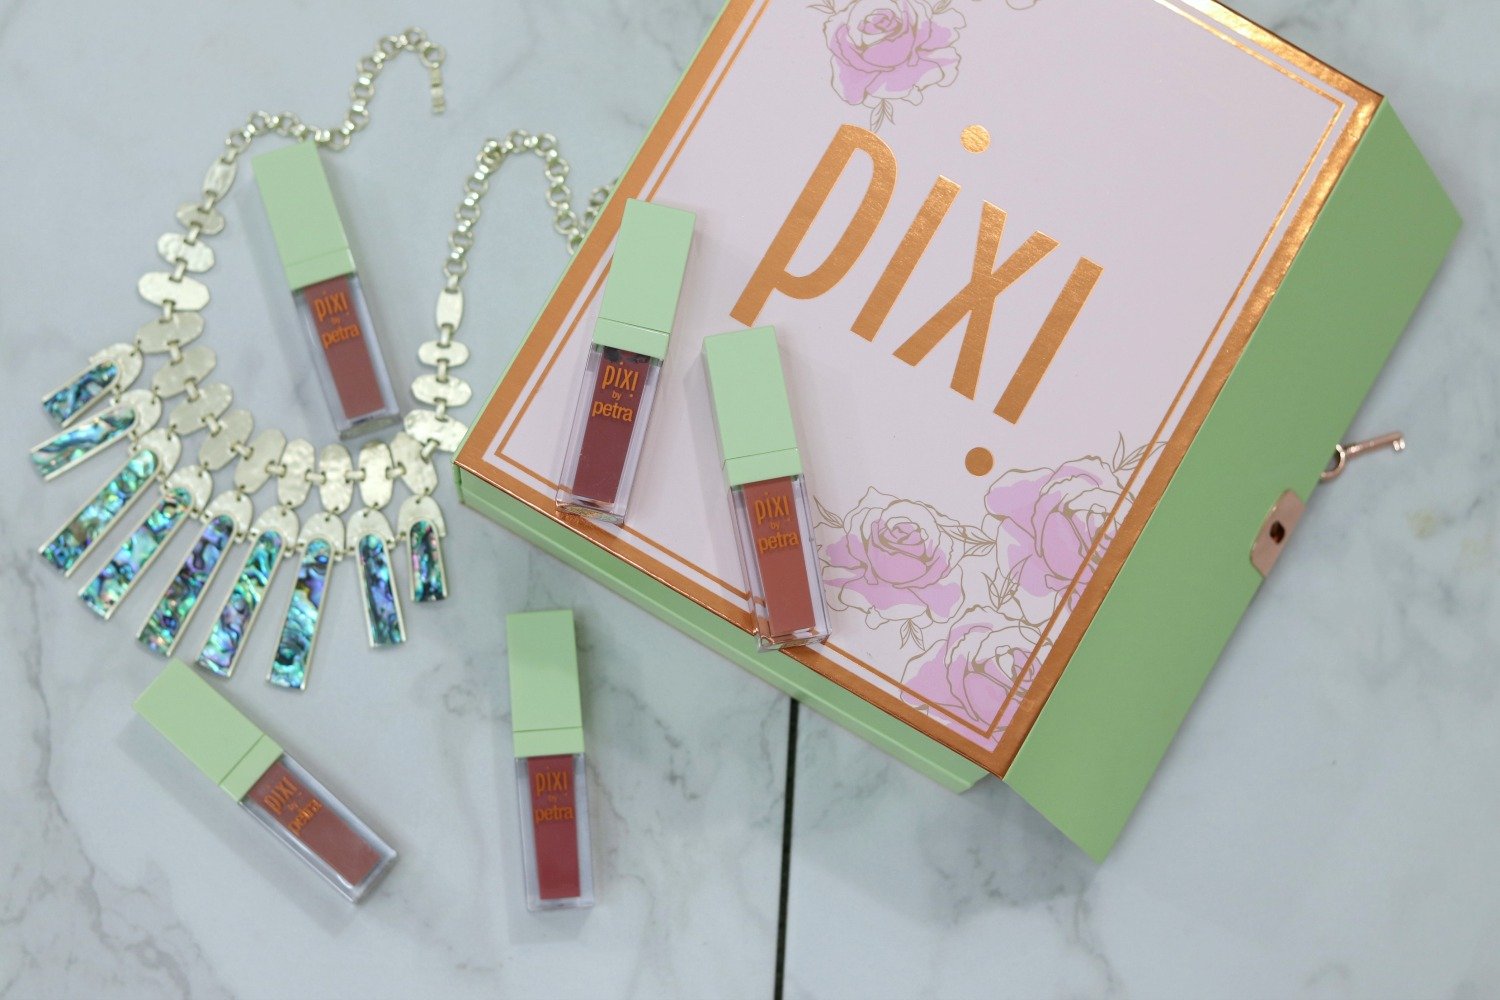 PIXI Mattelast Liquid Lip Review Brighter Darling Blog